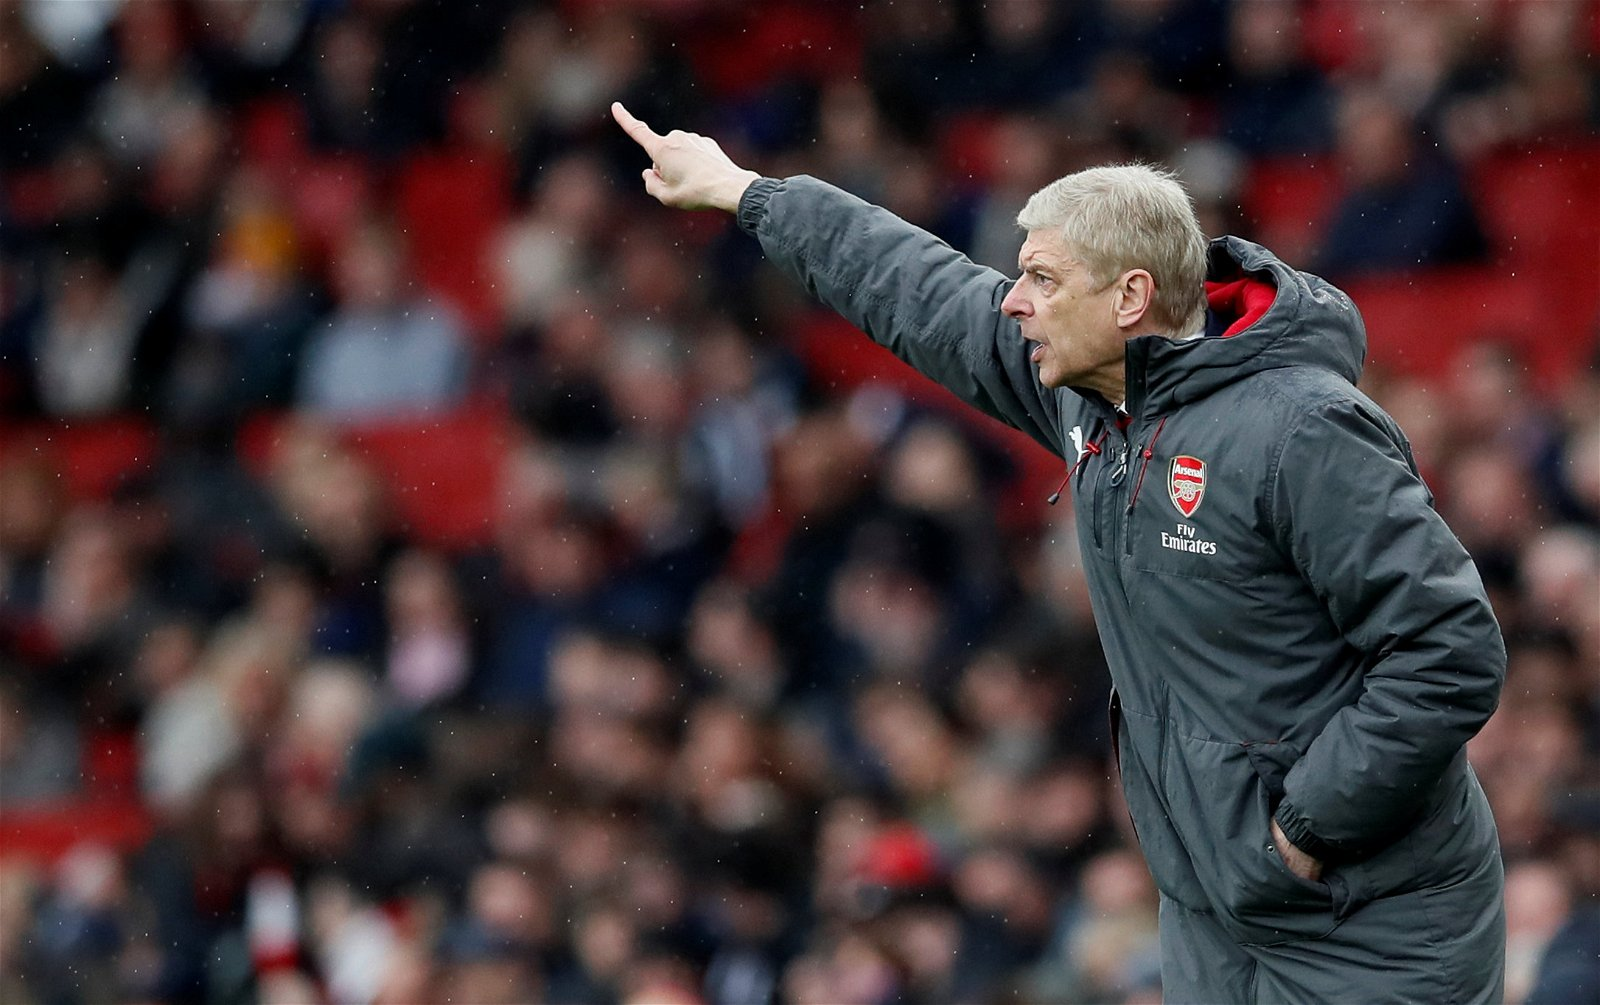 Arsene Wenger shouts instructions to his Arsenal players in Premier League match against Southampton